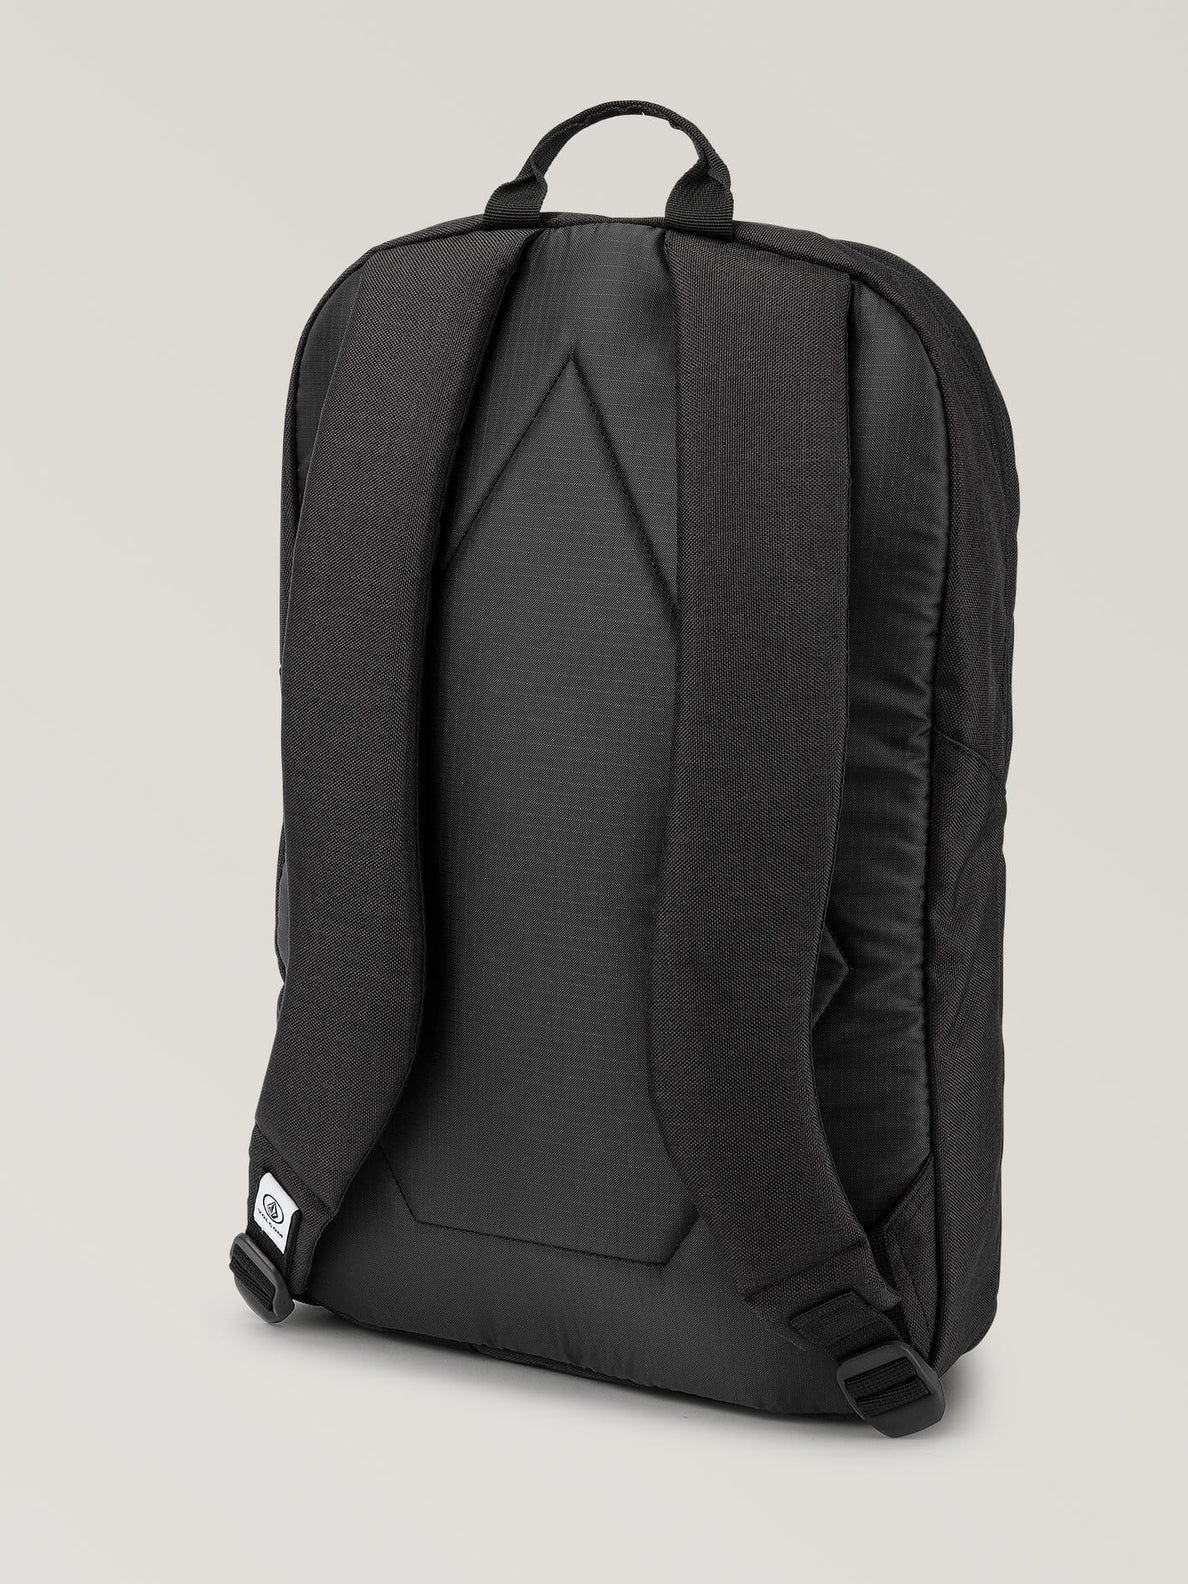 Academy Backpack - Vintage Black (D6531650_VBK) [B]